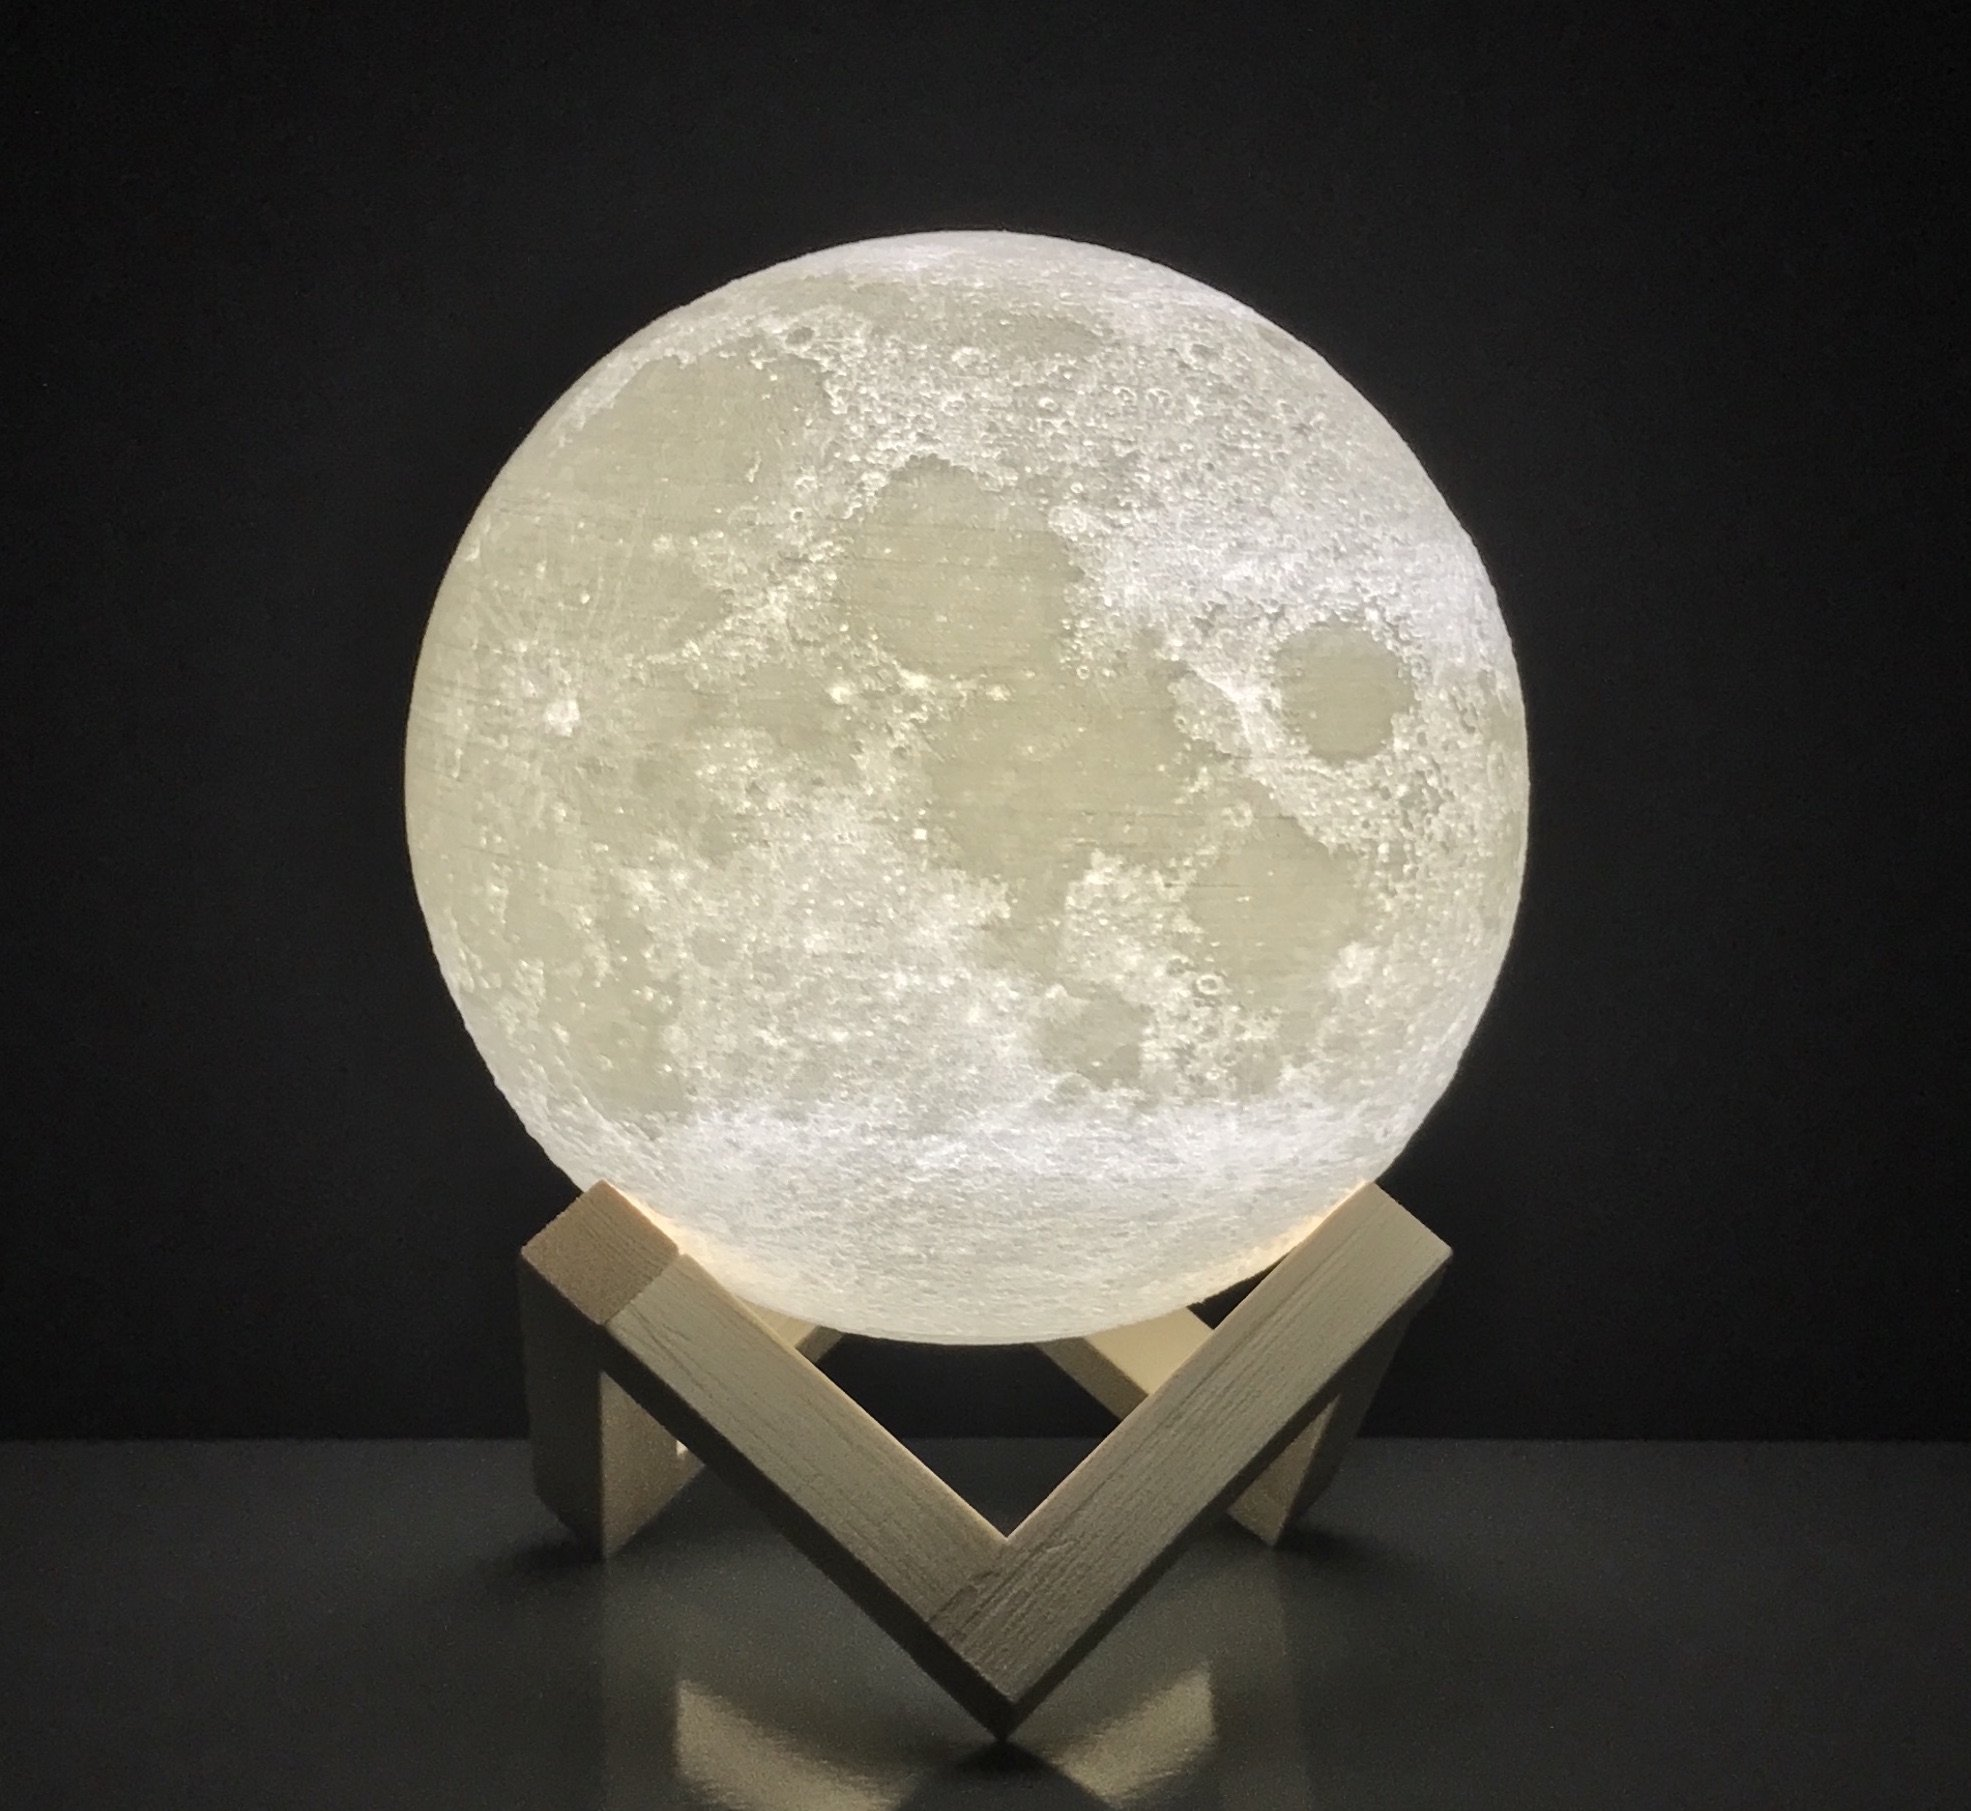 Moon Lamp Round Night Light 3D printed | FREE EBOOK | Dimmable Brightness, Touch Sensor, USB Charger, Warm & Cool White Lights, Amazing Lunar Details | For Bedroom, Desk, Home & More (4.7 inch)